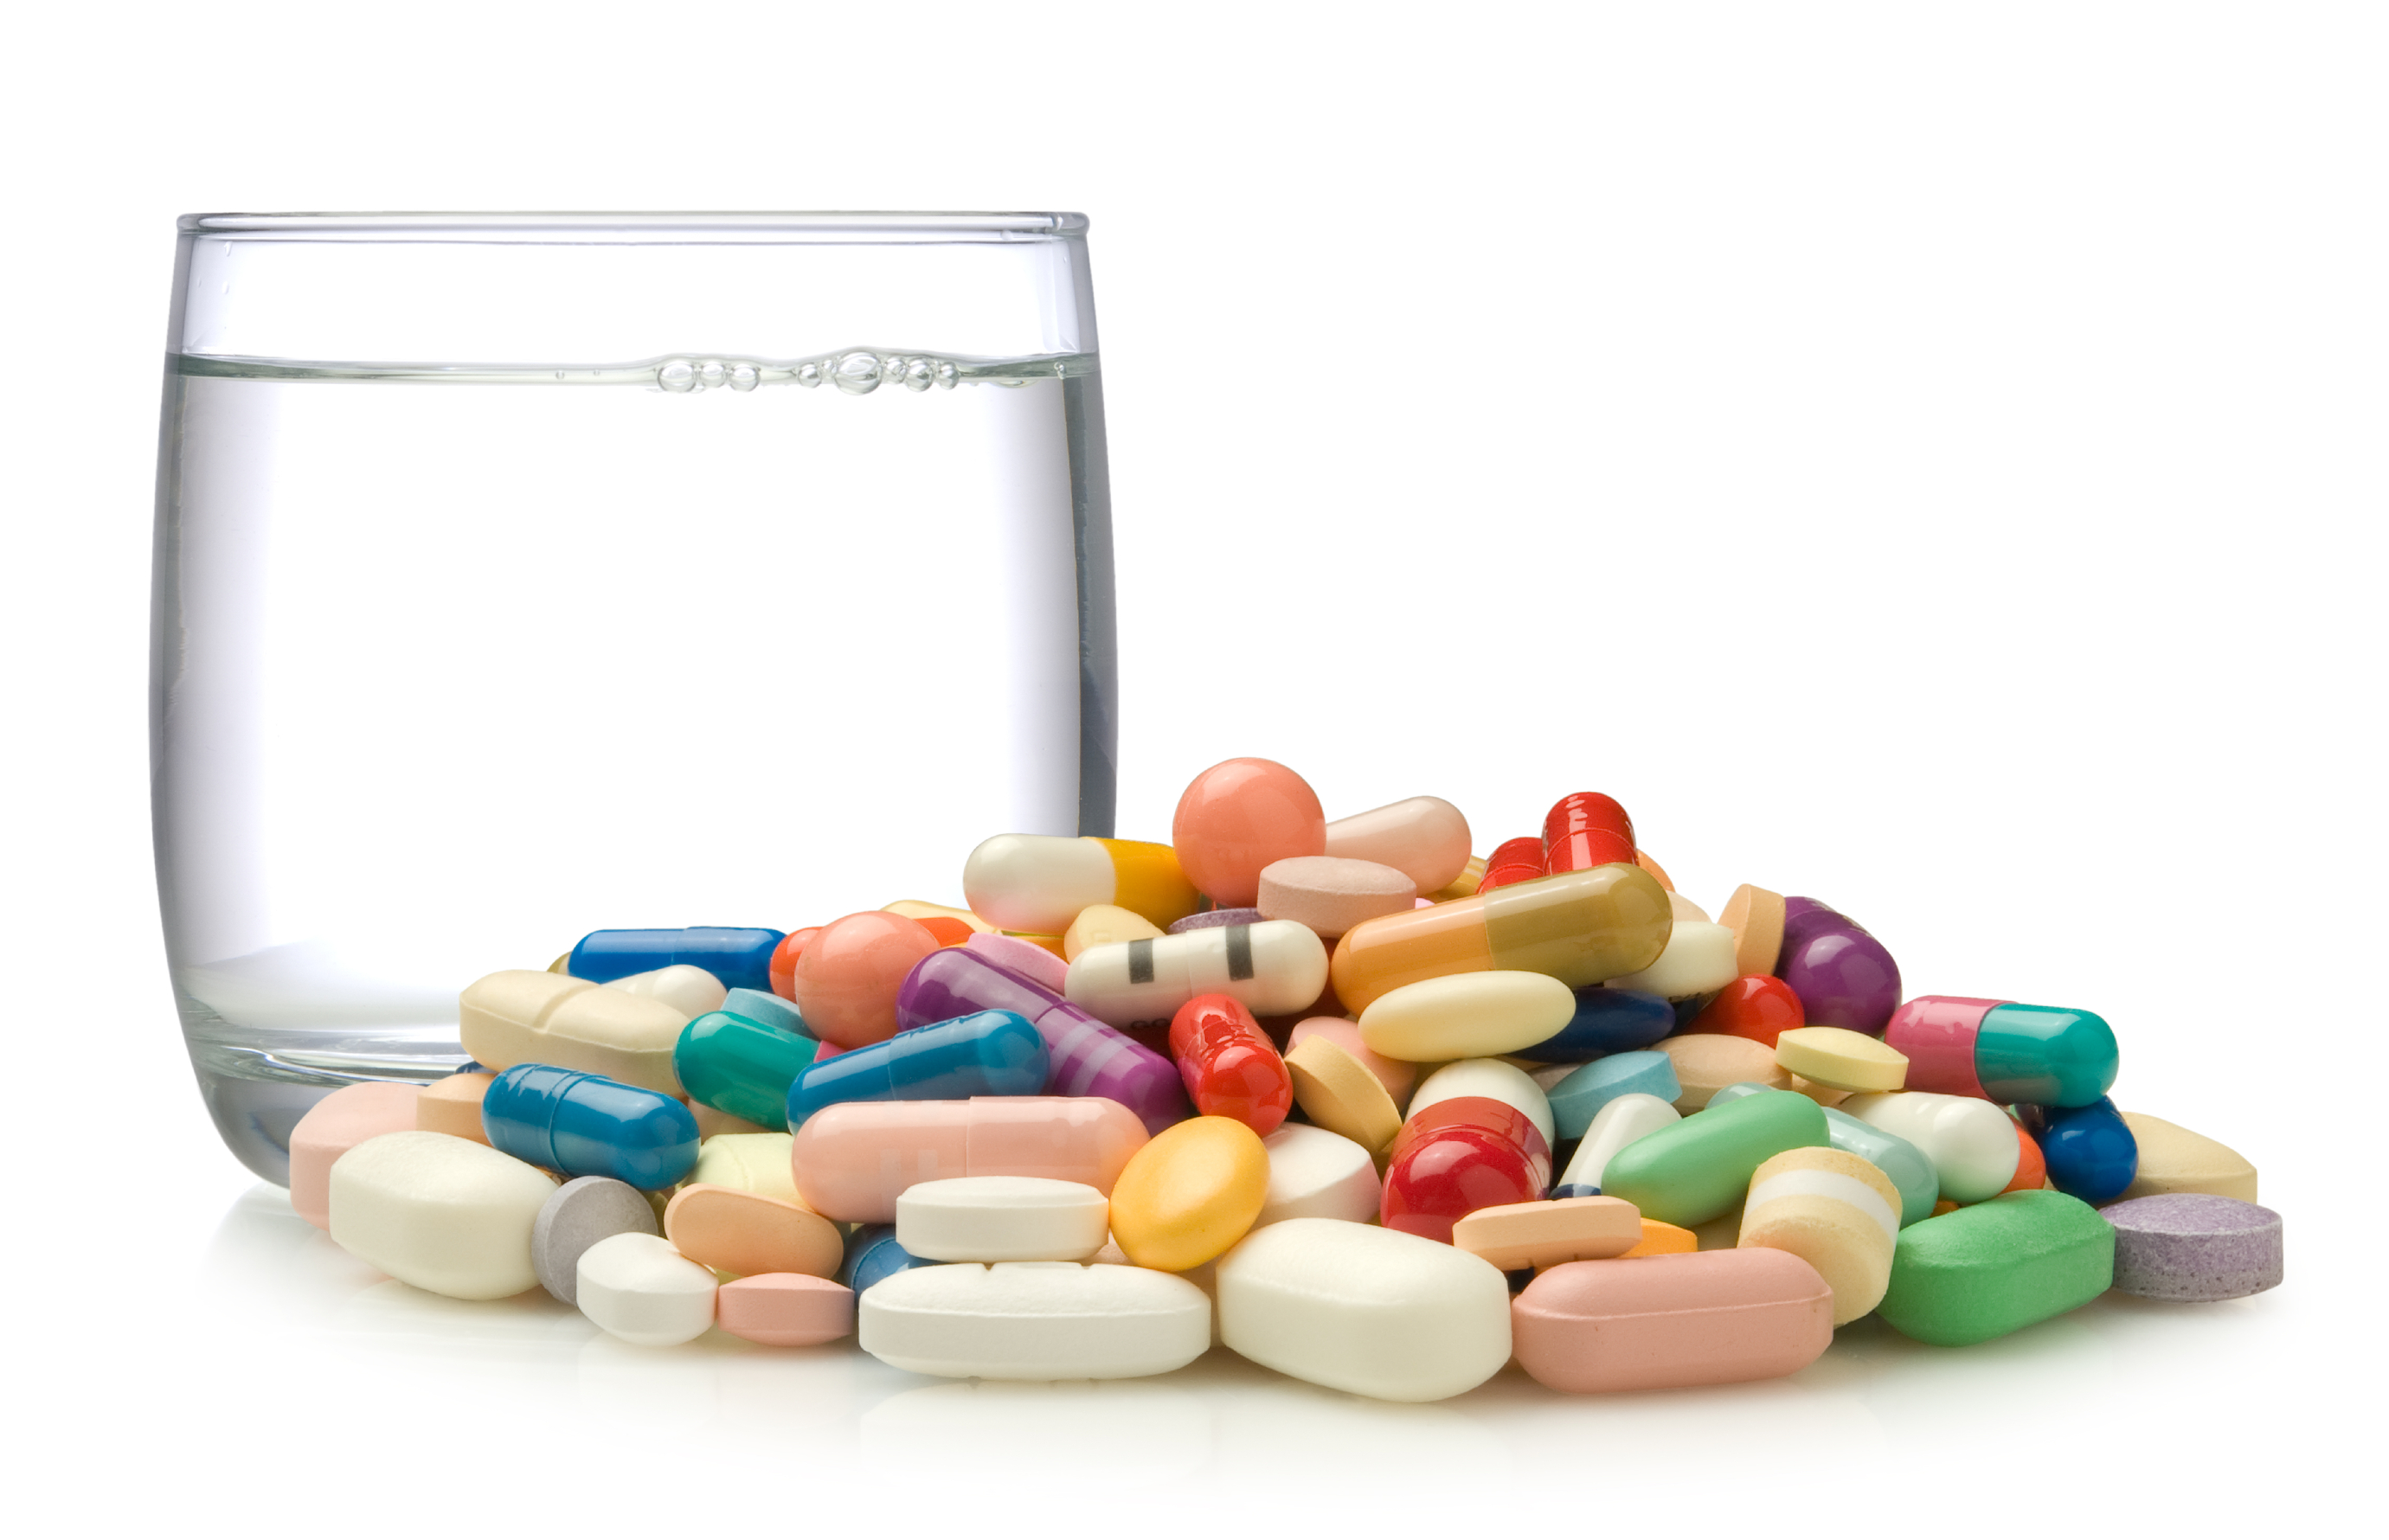 Is going for over-the-counter meds safe?